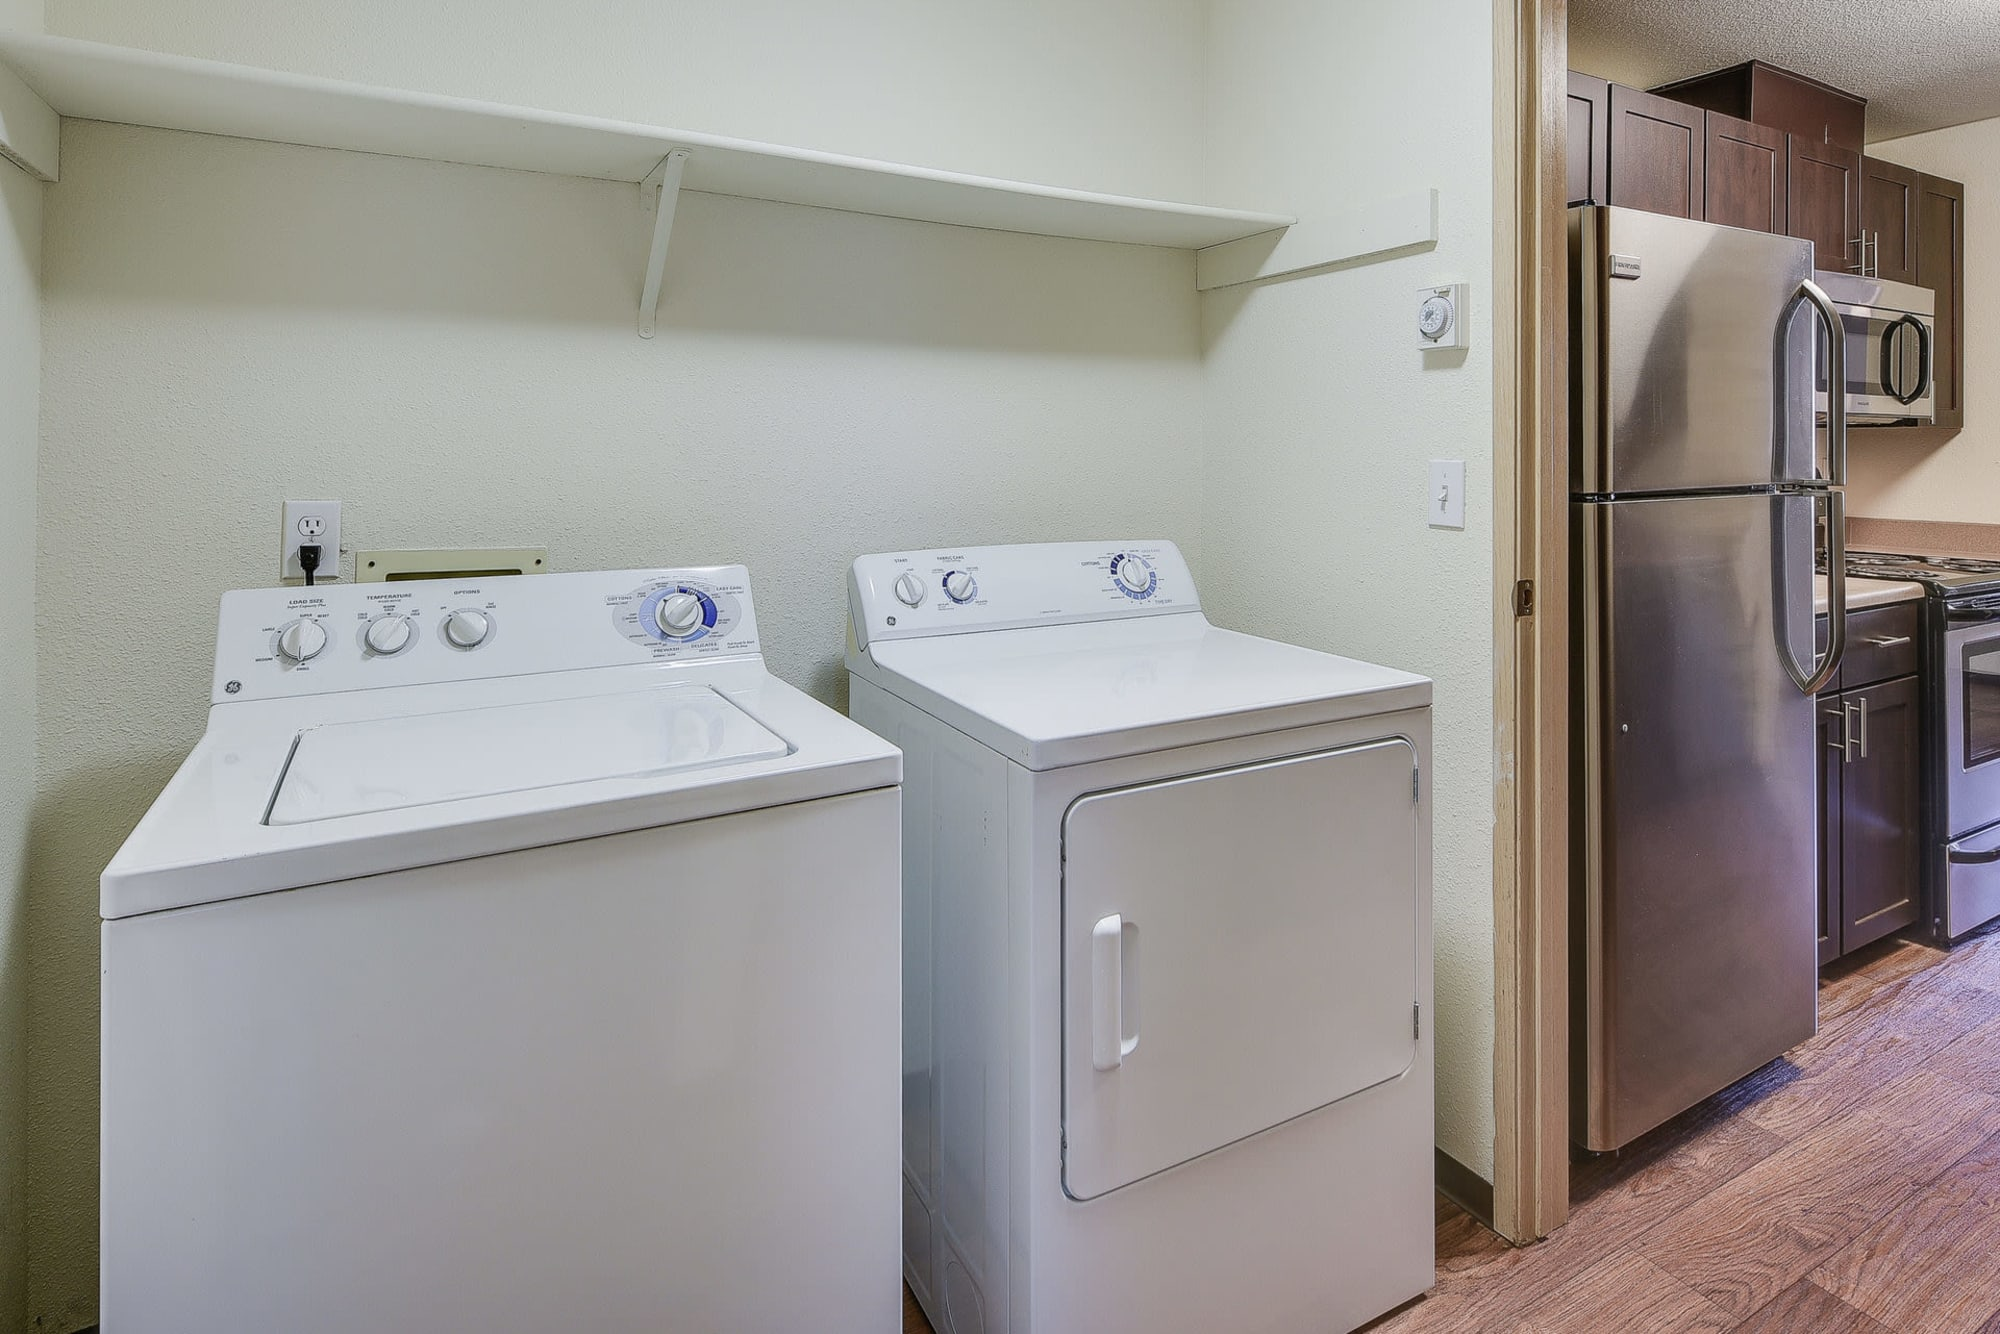 Washer and dryer at Renaissance at 29th Apartments in Vancouver, Washington